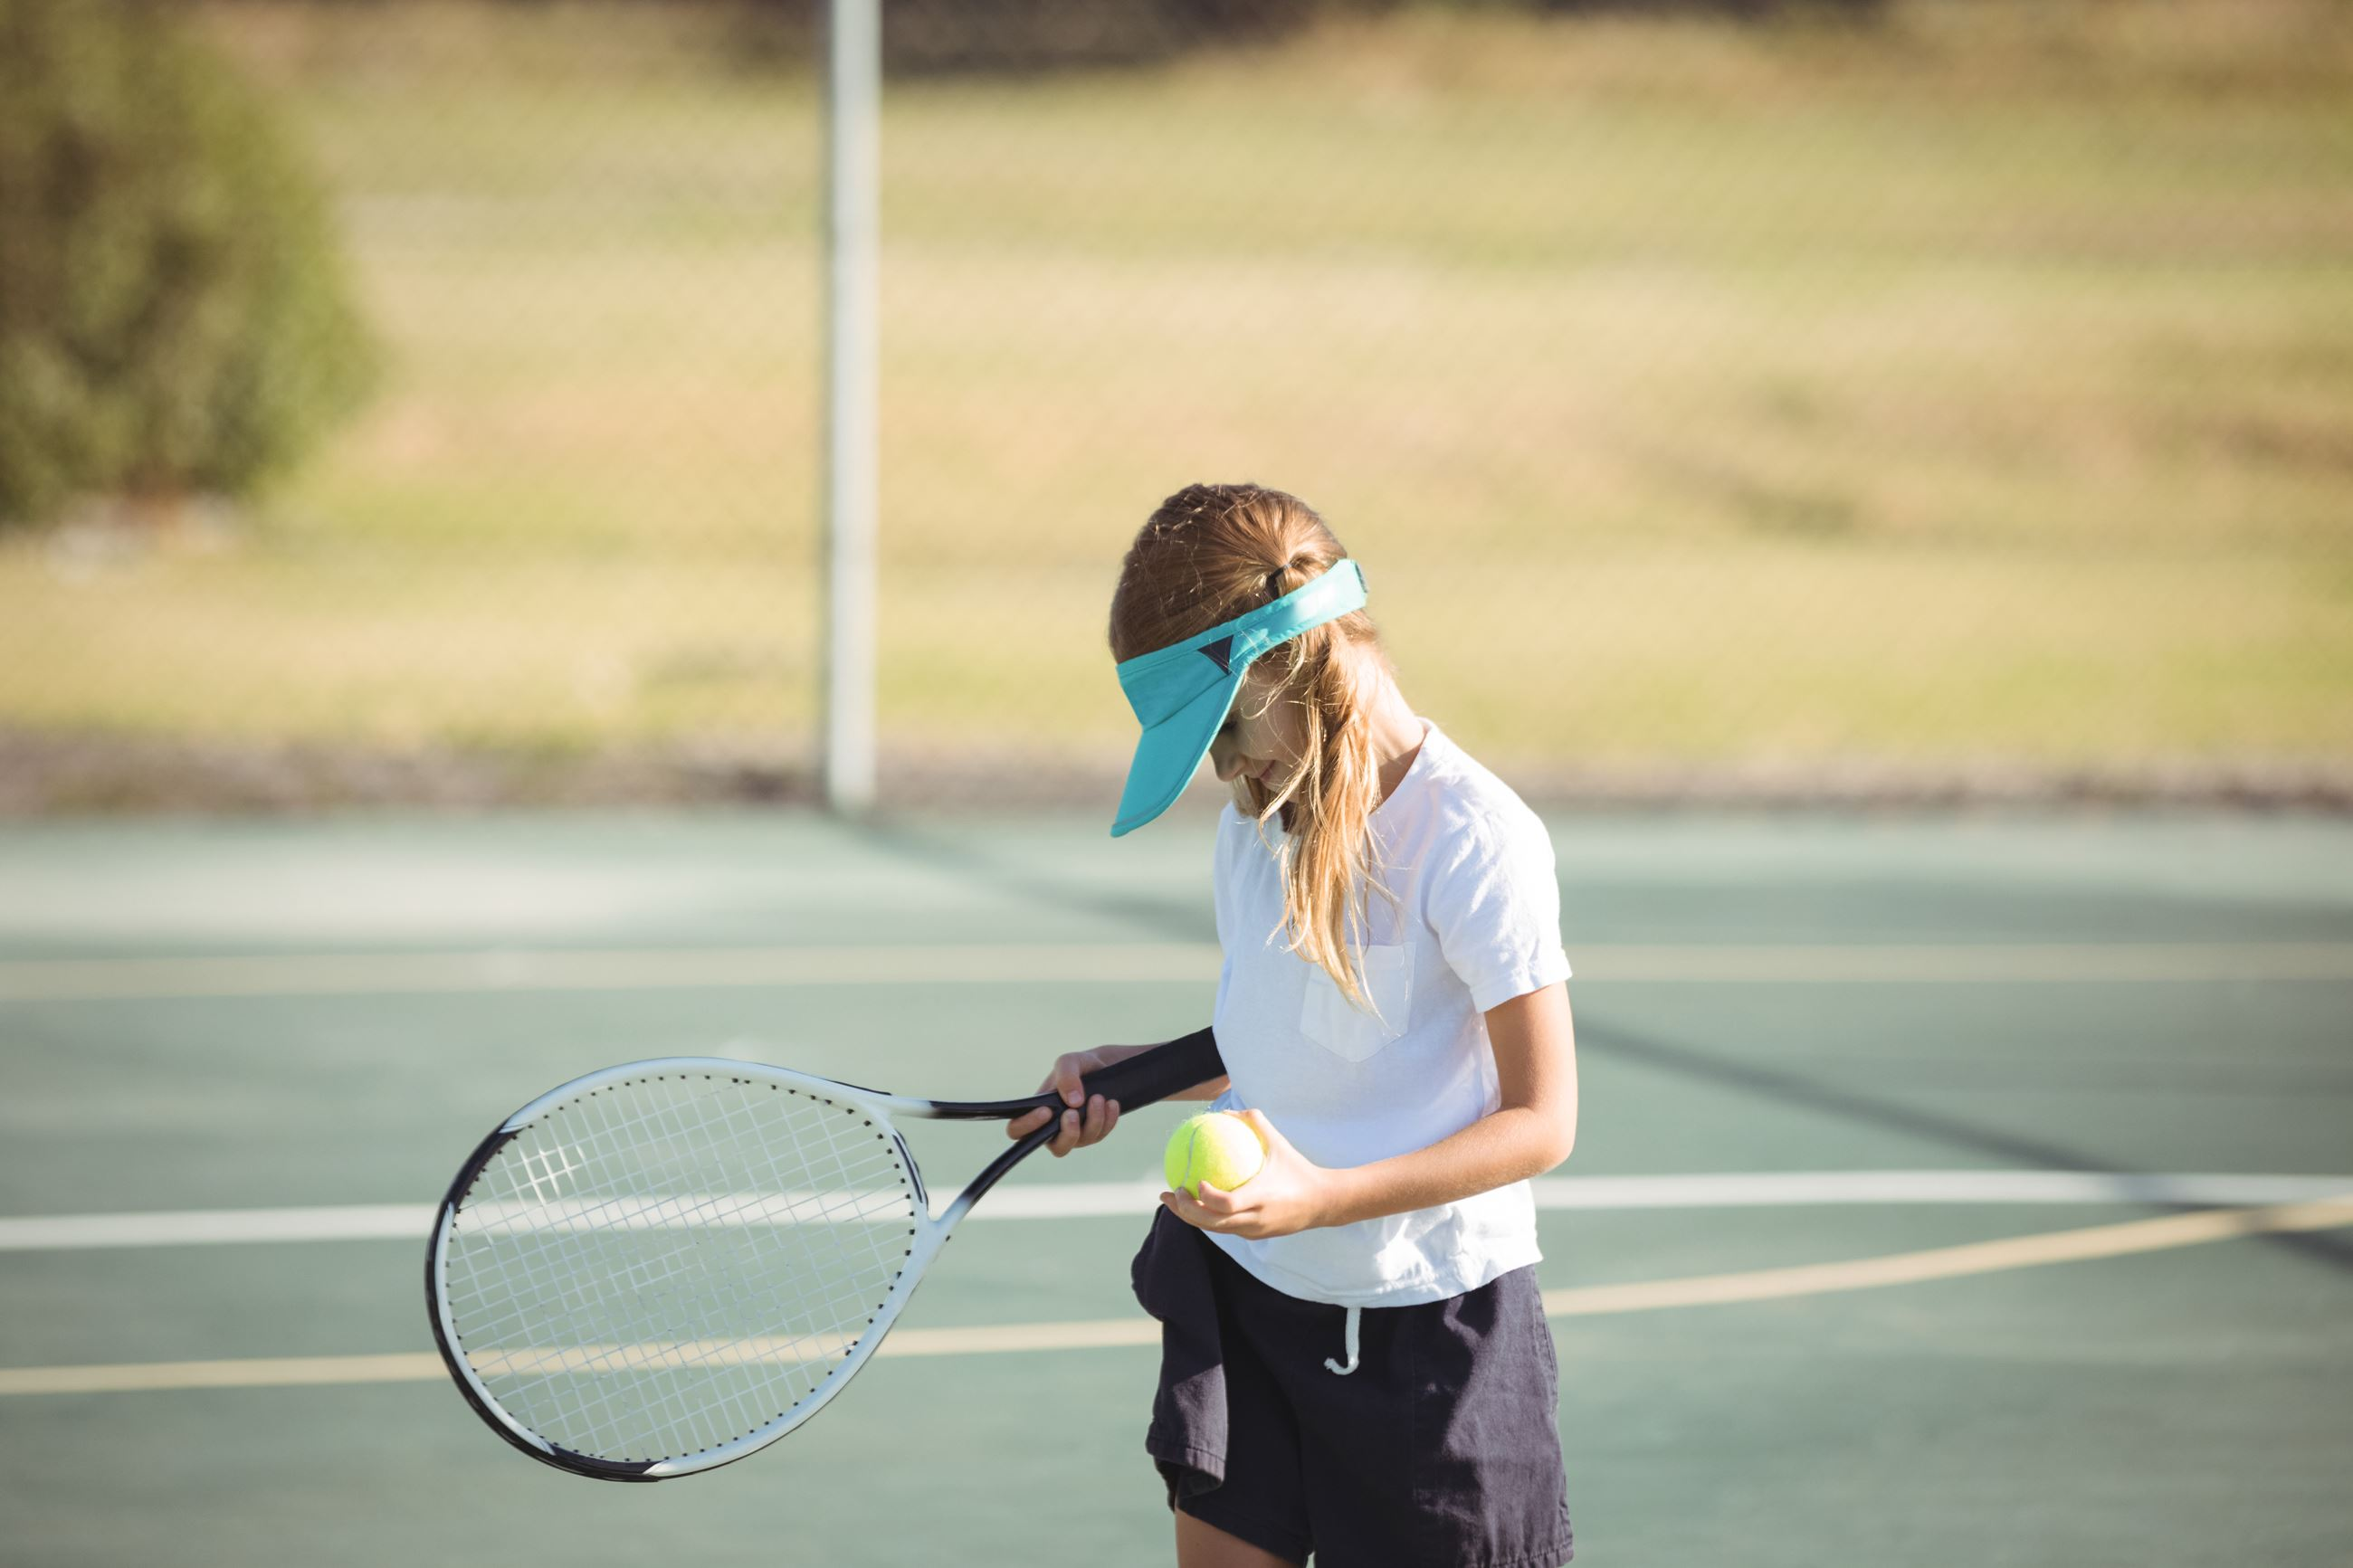 girl holding tennis ball and racket on court